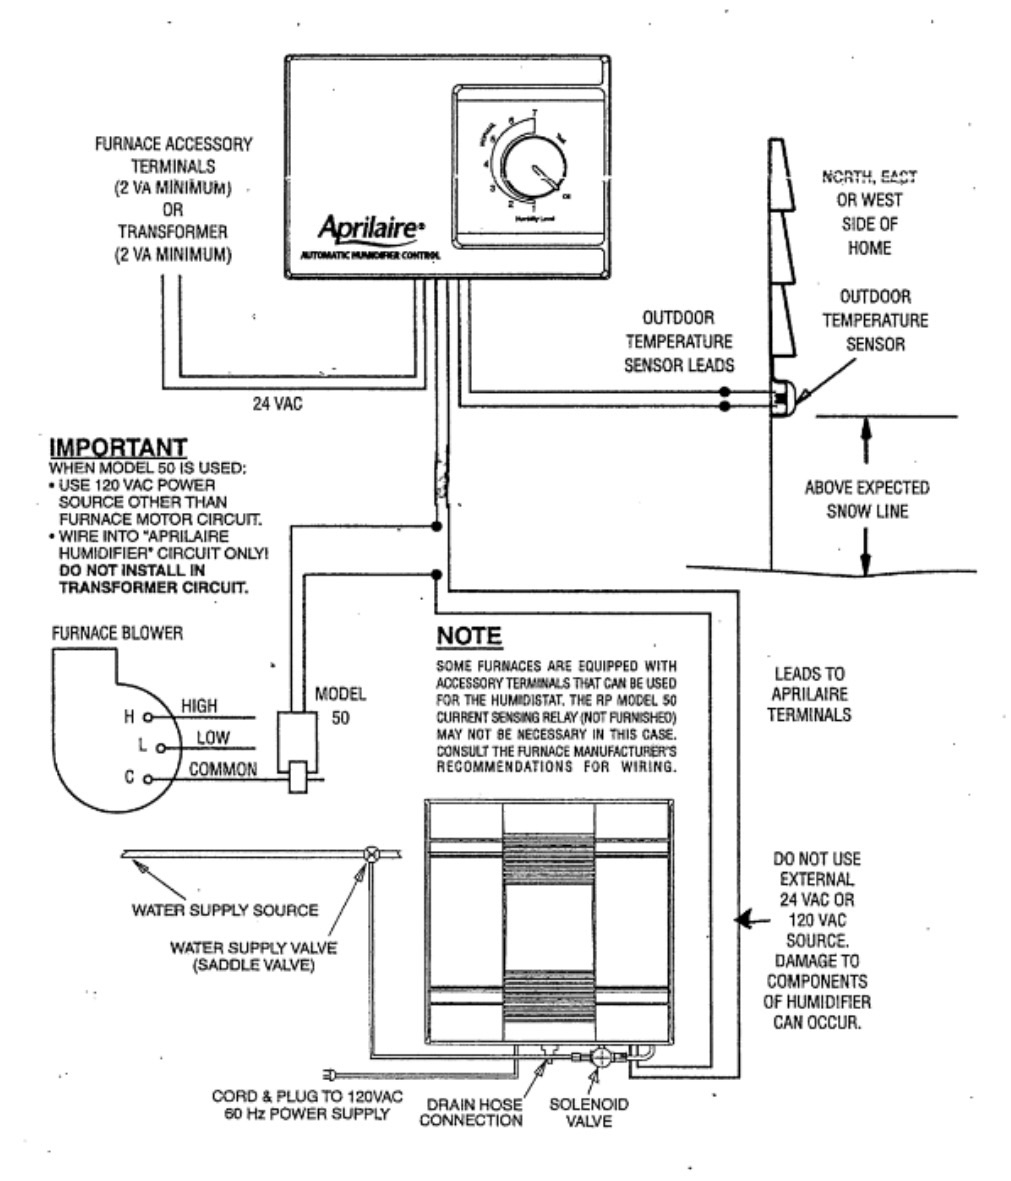 York Furnace Wiring Schematic - Wiring Diagram Explained - Oil Furnace Wiring Diagram